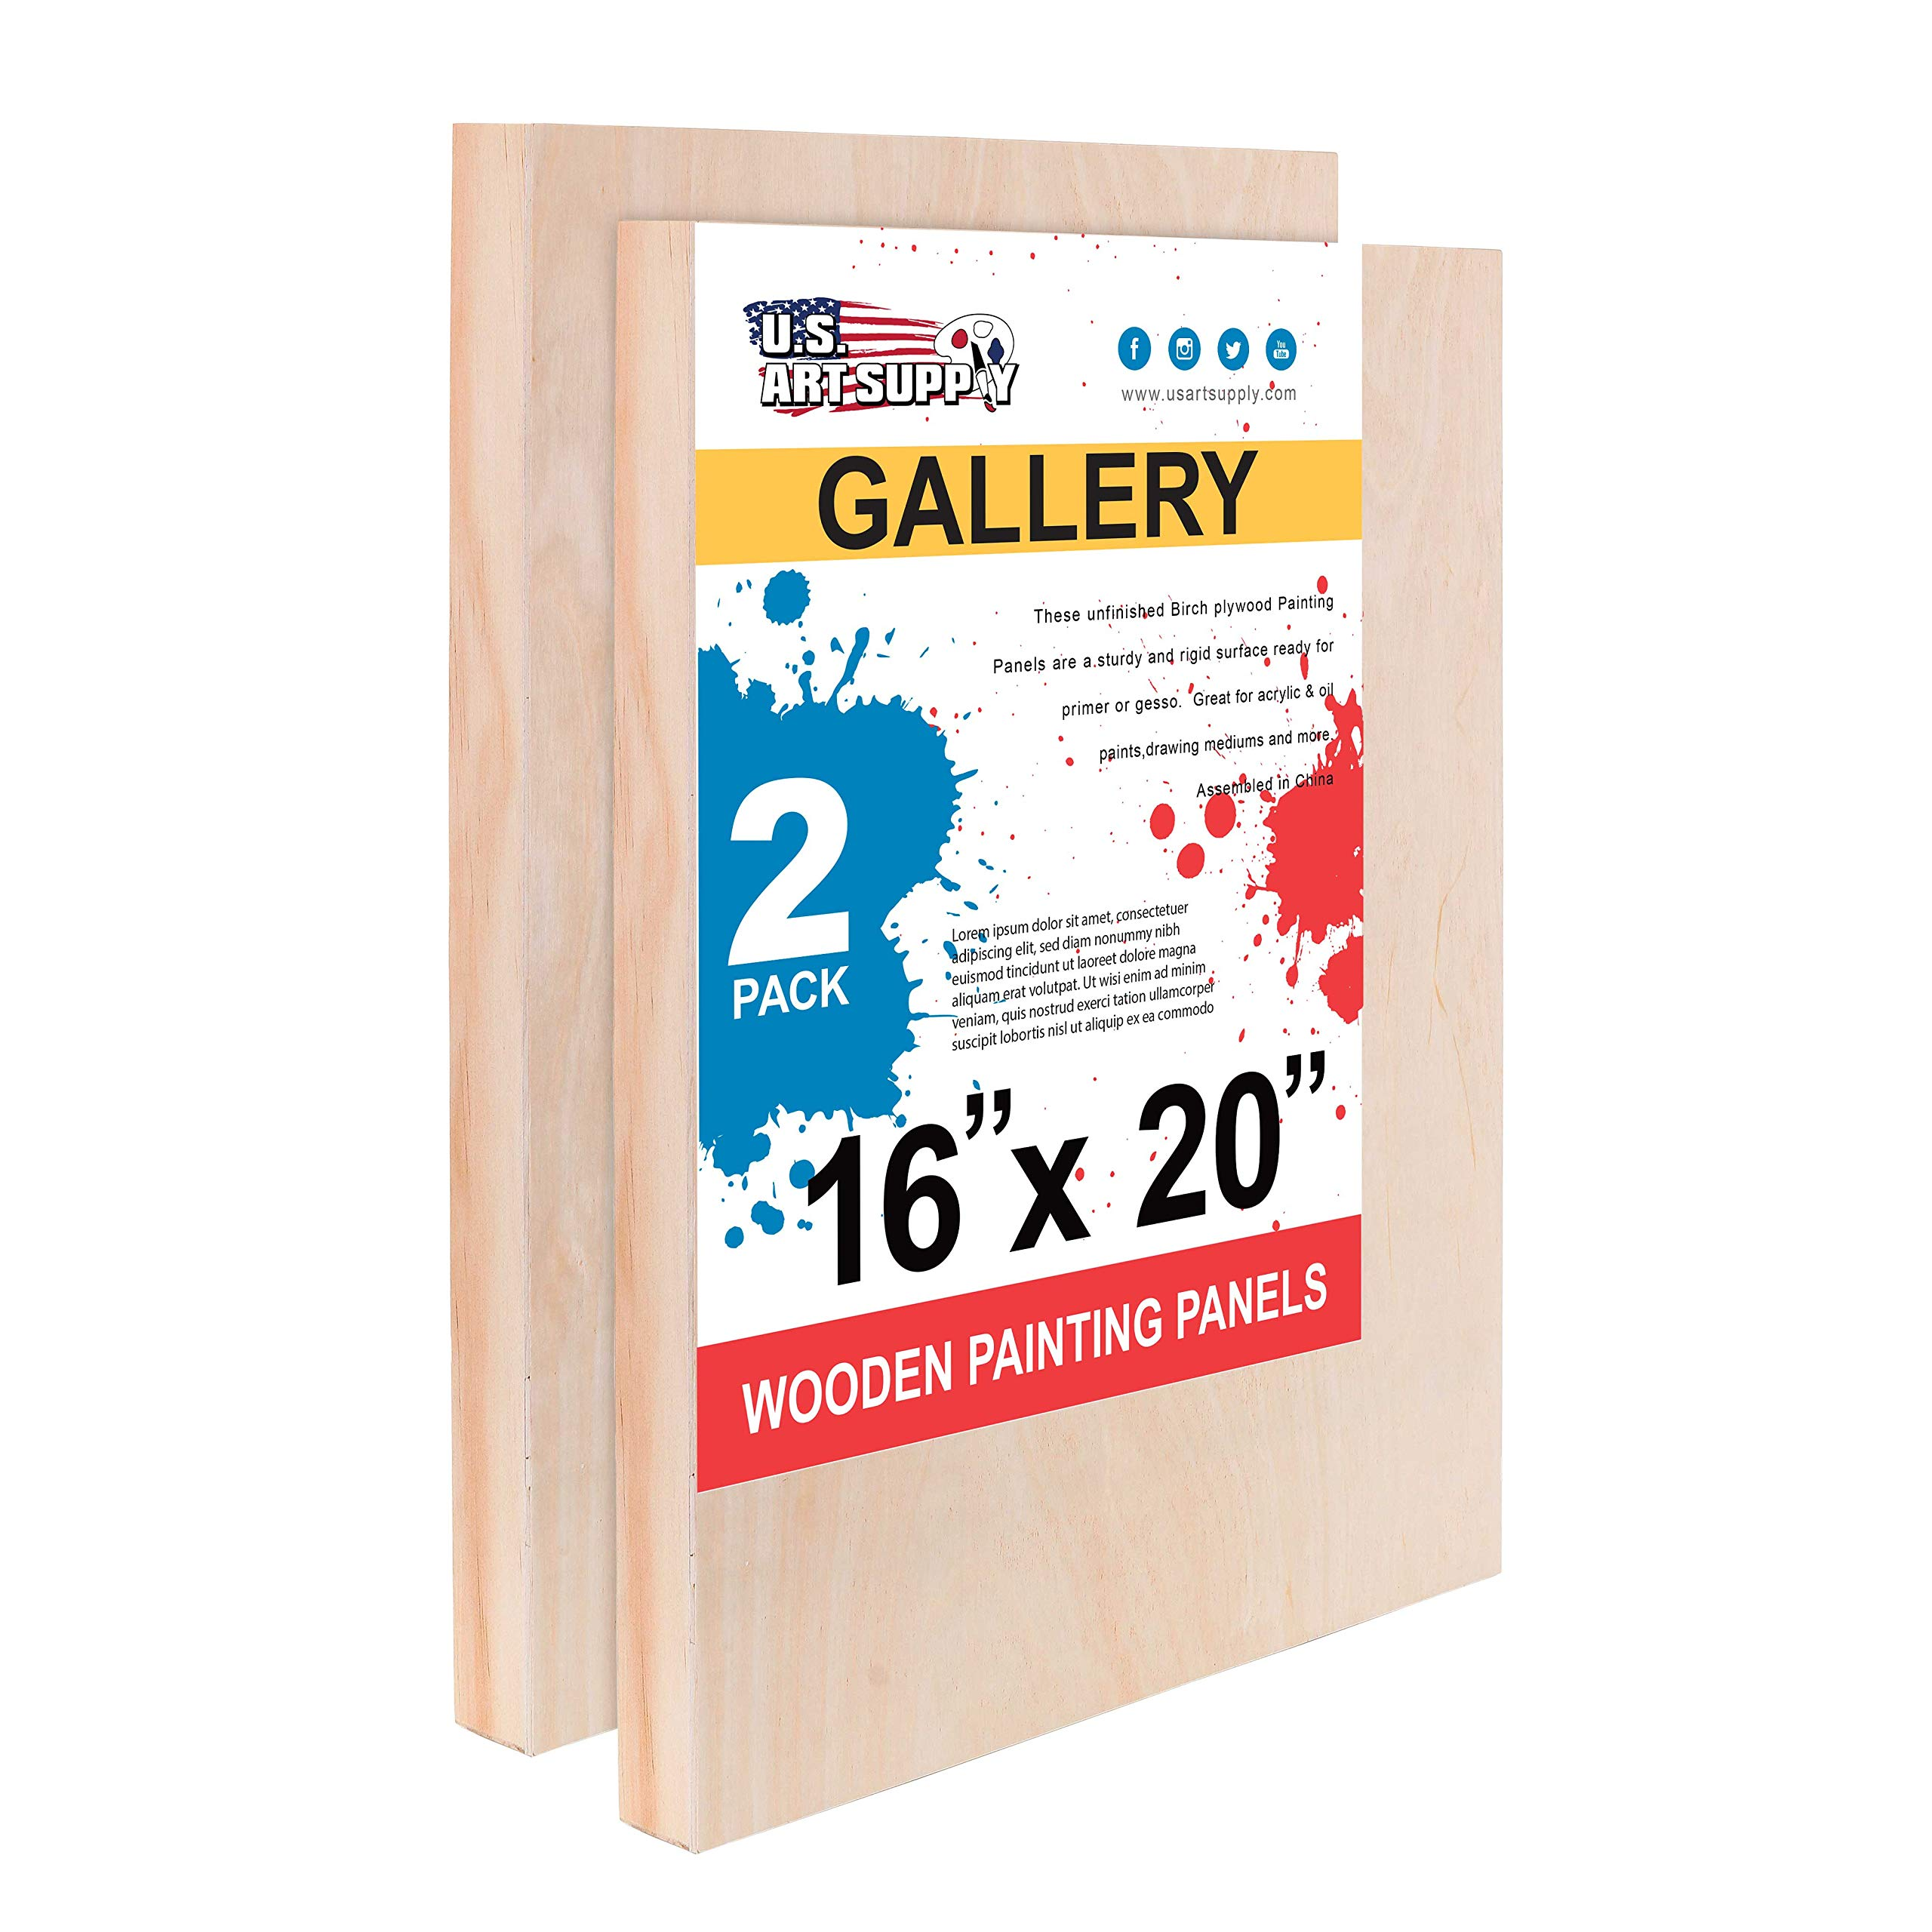 U.S. Art Supply 16'' x 20'' Birch Wood Paint Pouring Panel Boards, Gallery 1-1/2'' Deep Cradle (Pack of 2) - Artist Depth Wooden Wall Canvases - Painting Mixed-Media Craft, Acrylic, Oil, Encaustic by U.S. Art Supply